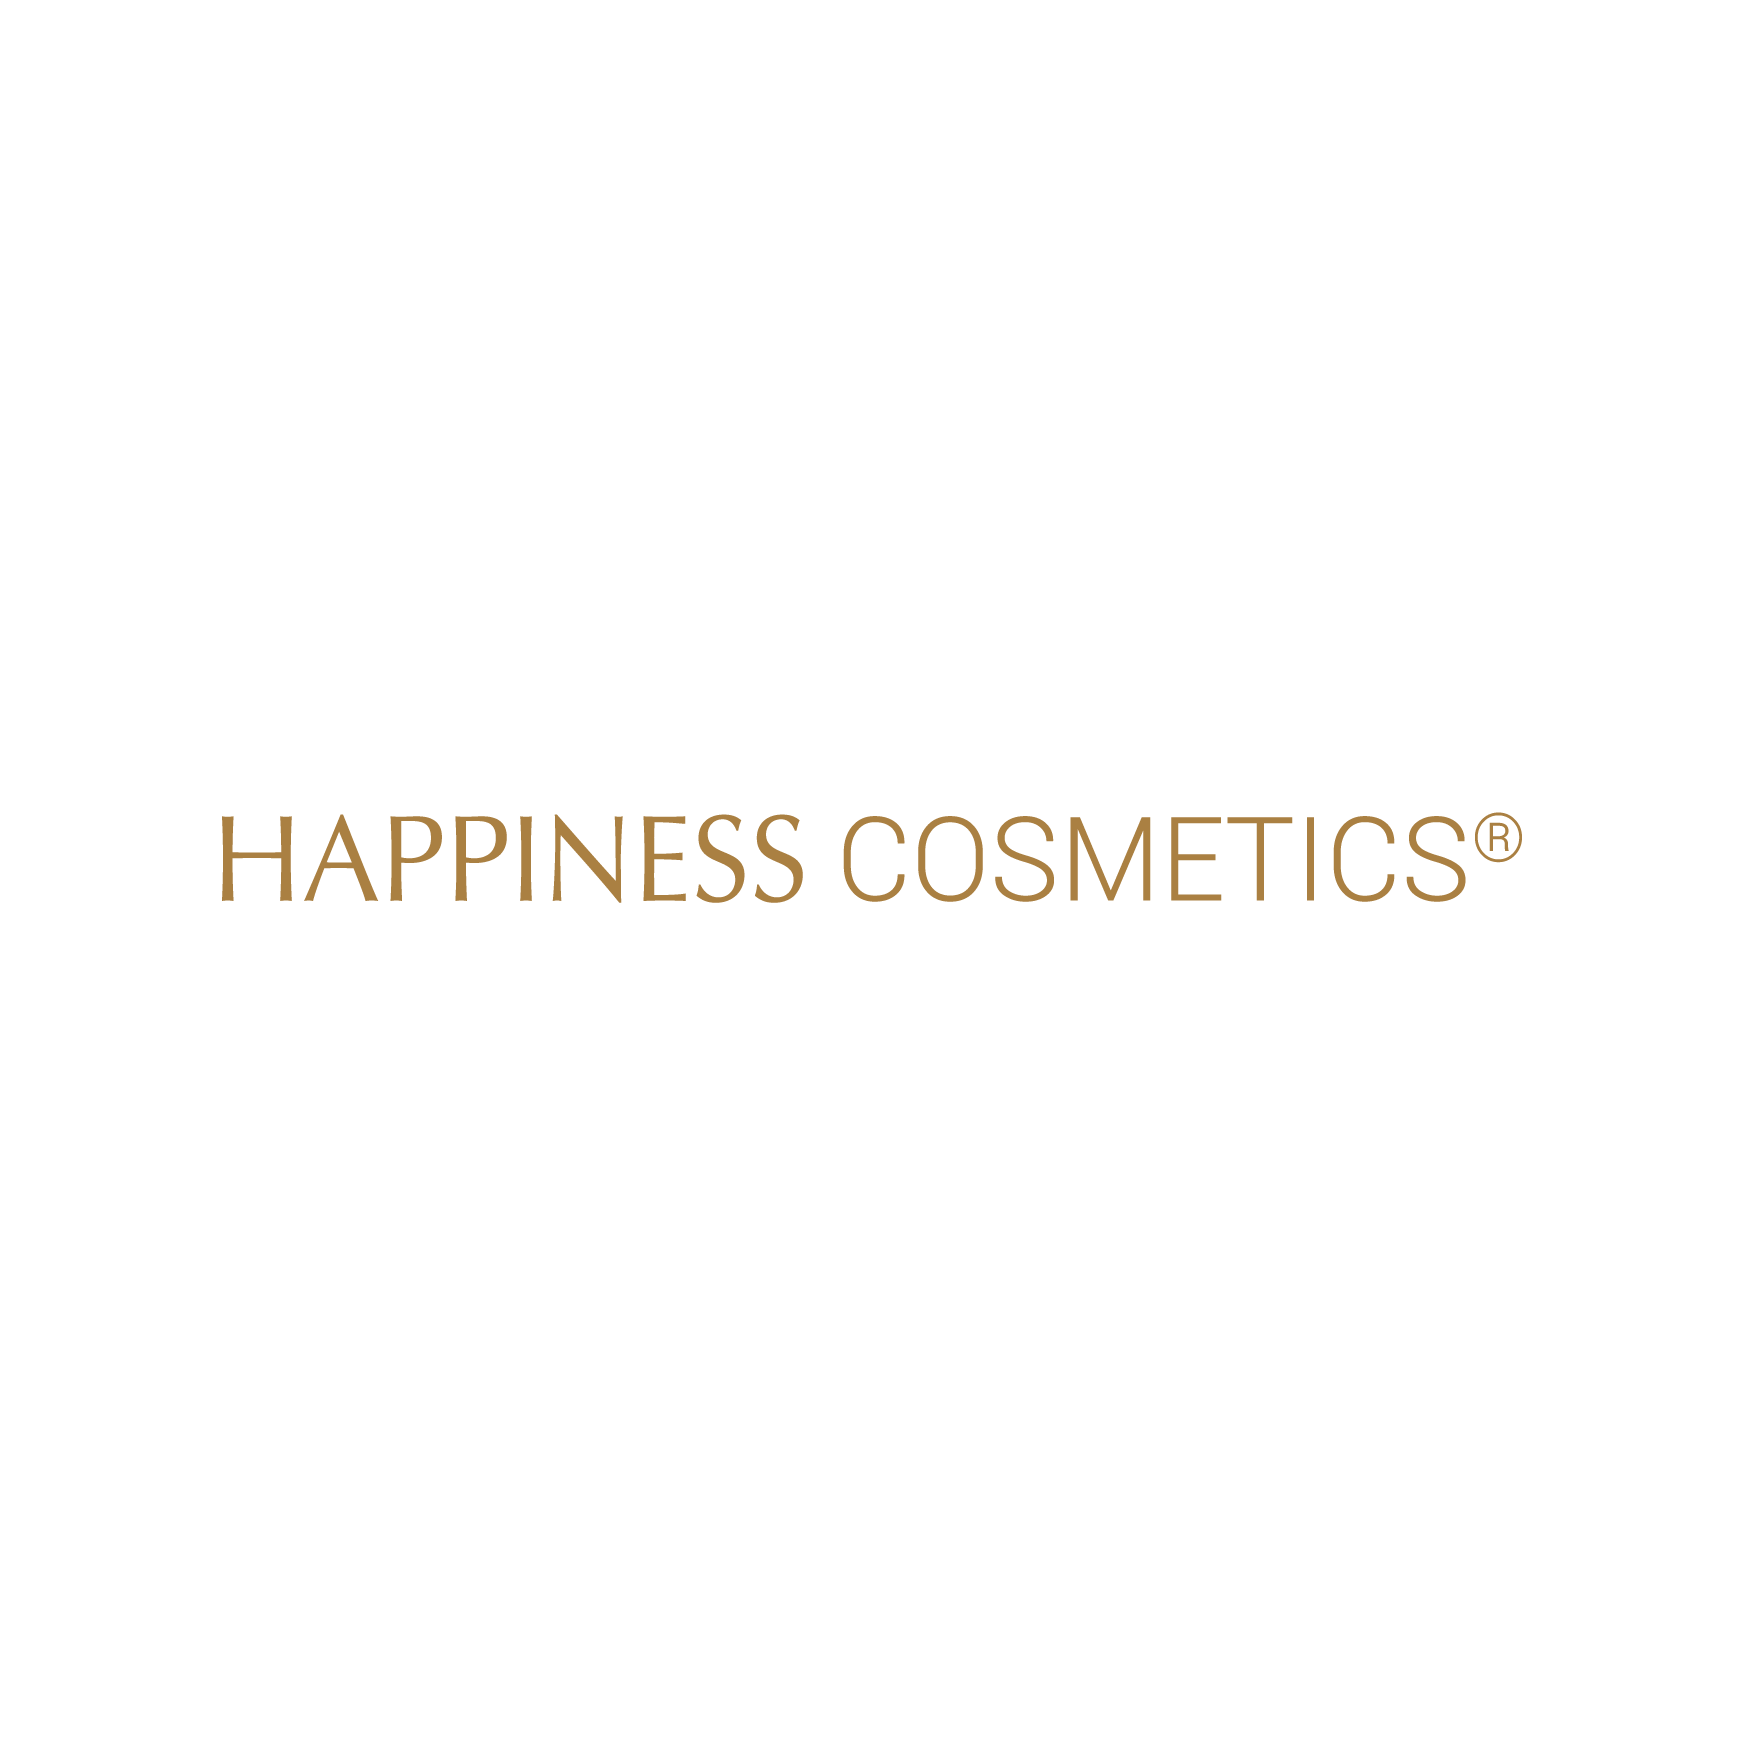 Happiness Cosmetics